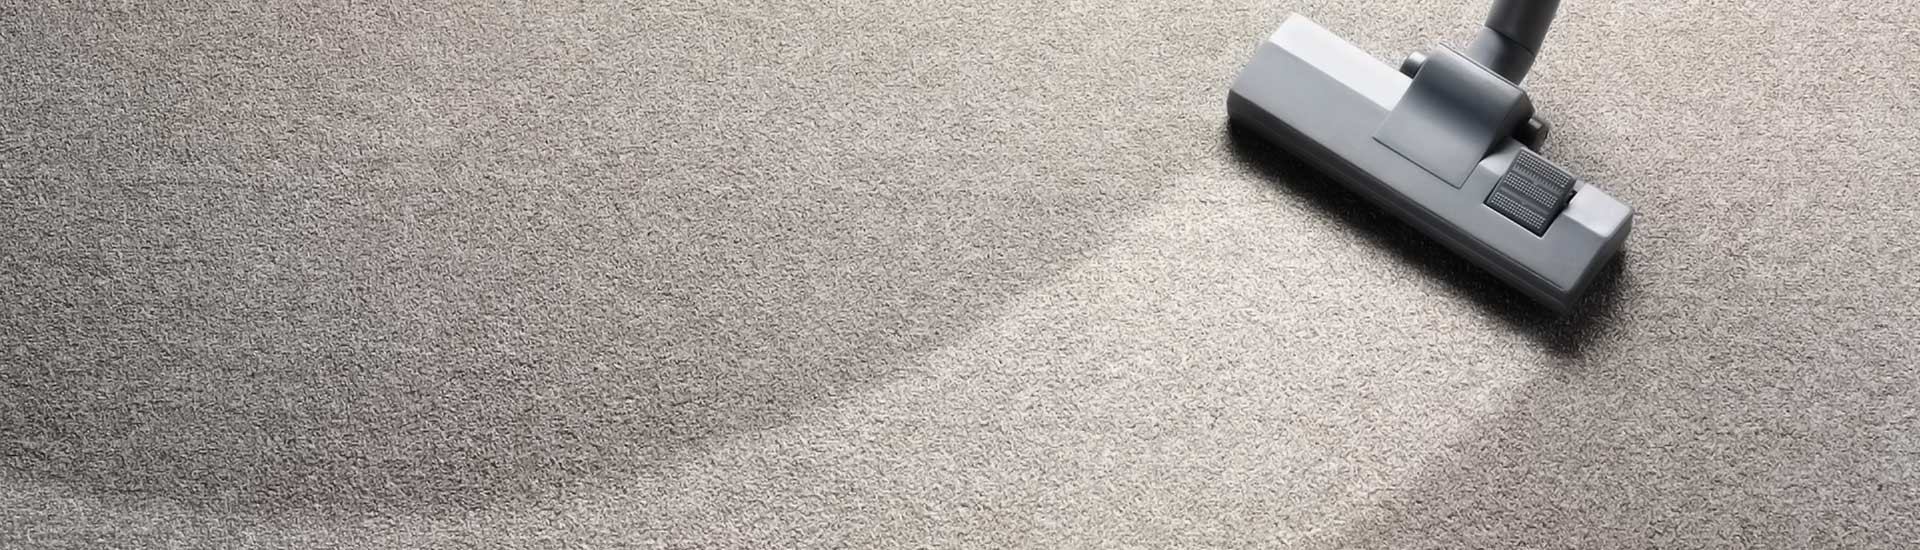 Carpet Cleaning Carpet Rug Upholstery Cleaning Company In New Bern Nc